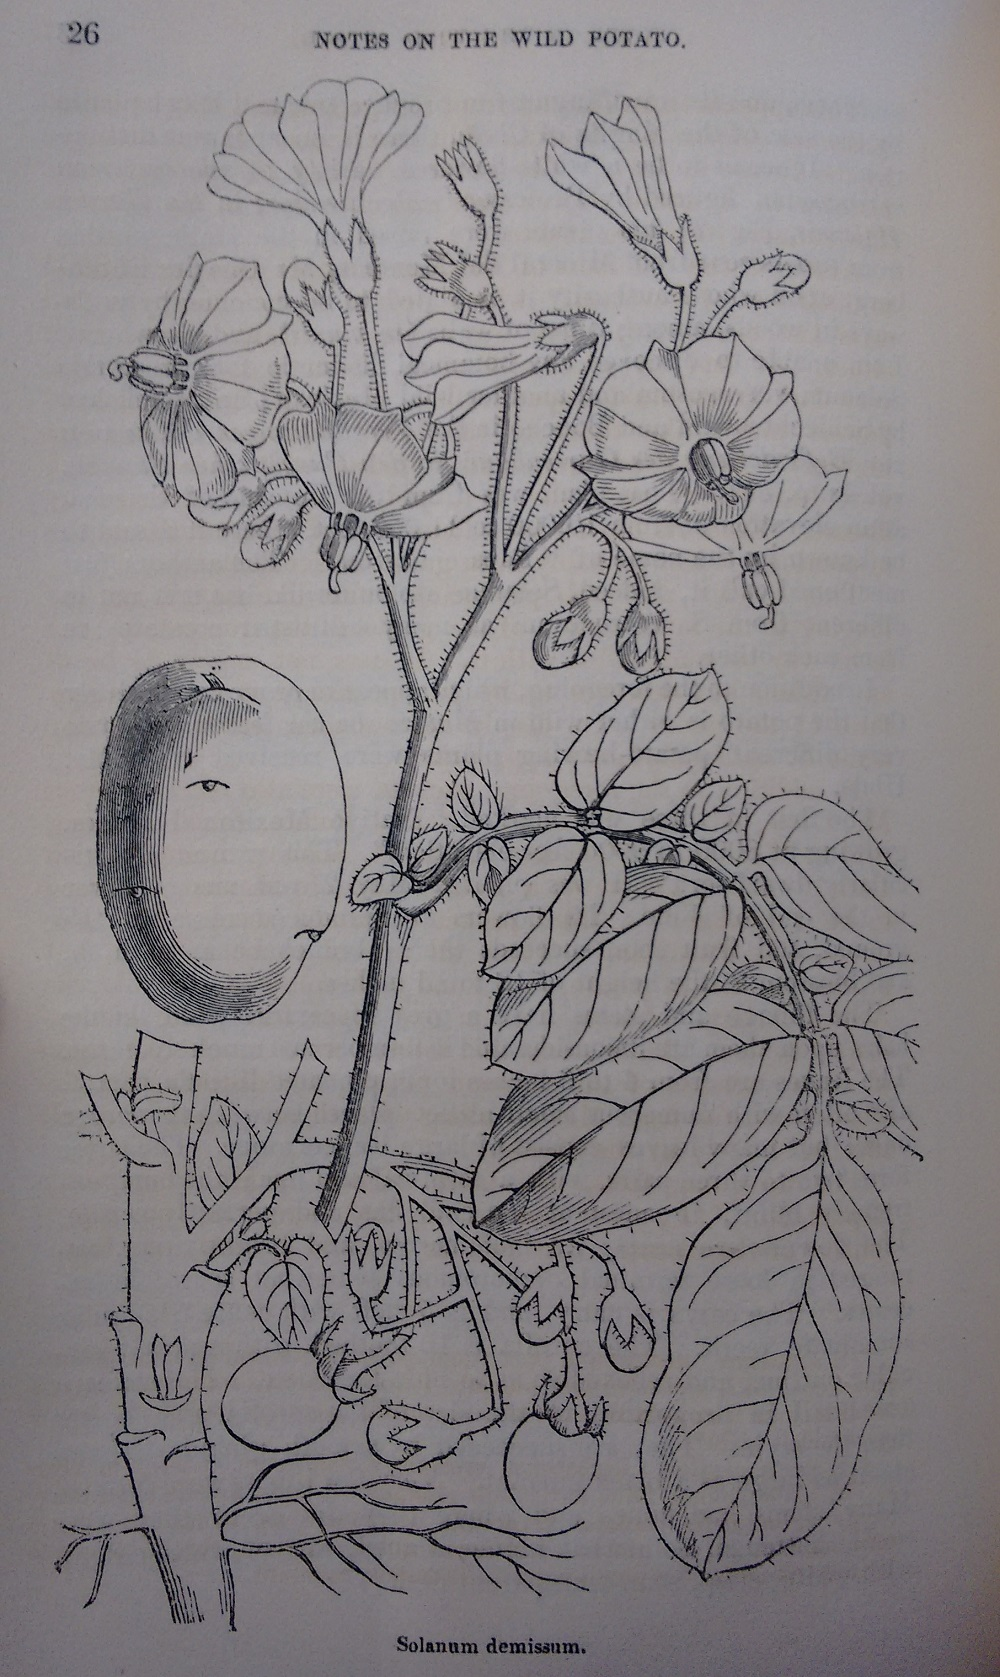 Line drawing of a wild potaot plant, 19th century